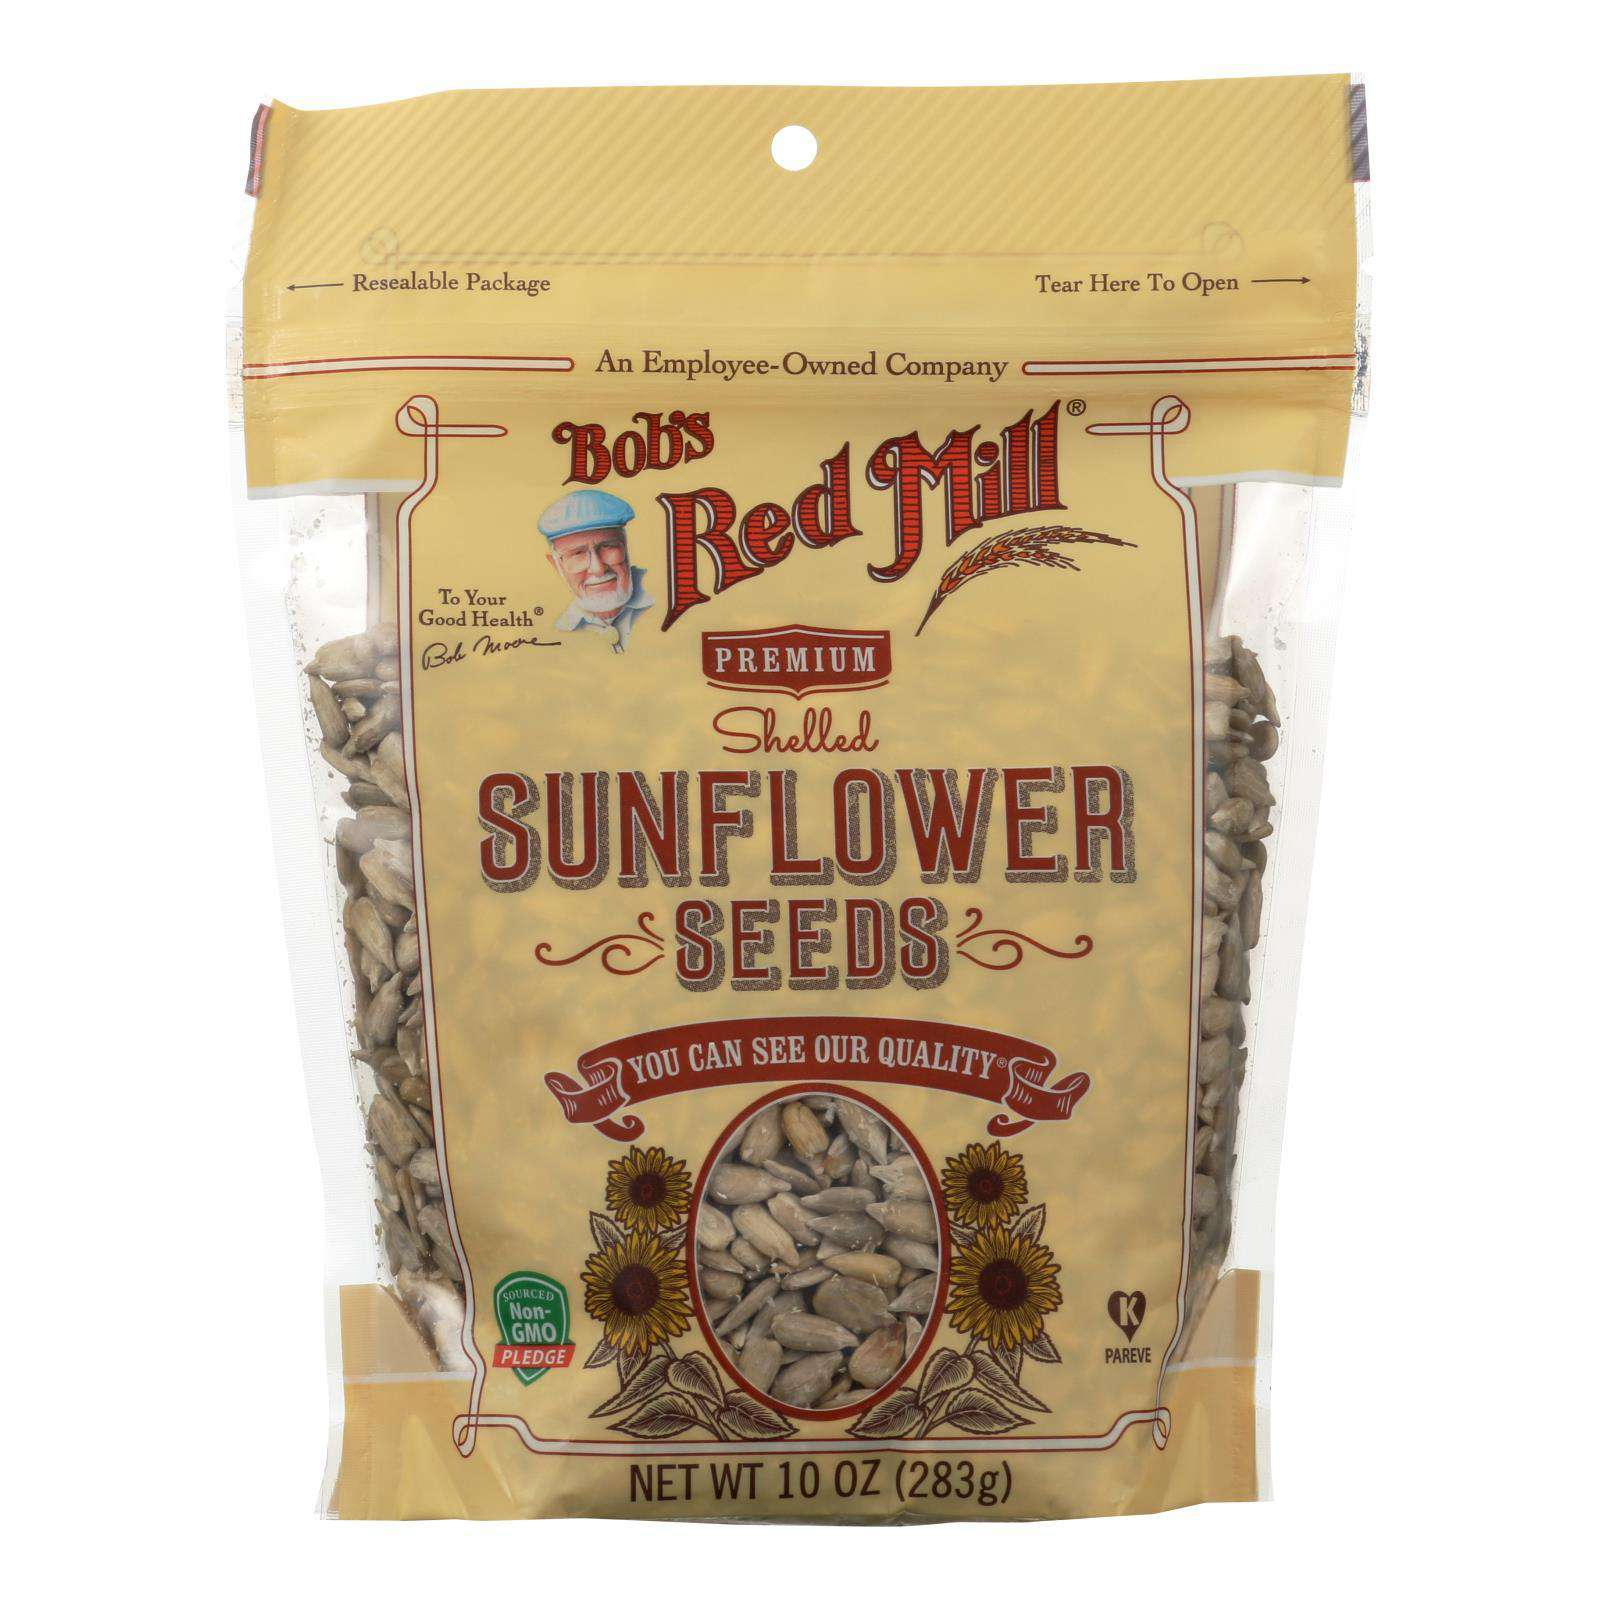 Bob's Red Mill - Seeds - Sunflower - Shelled - Case Of 6 - 10 Oz - BeeGreen